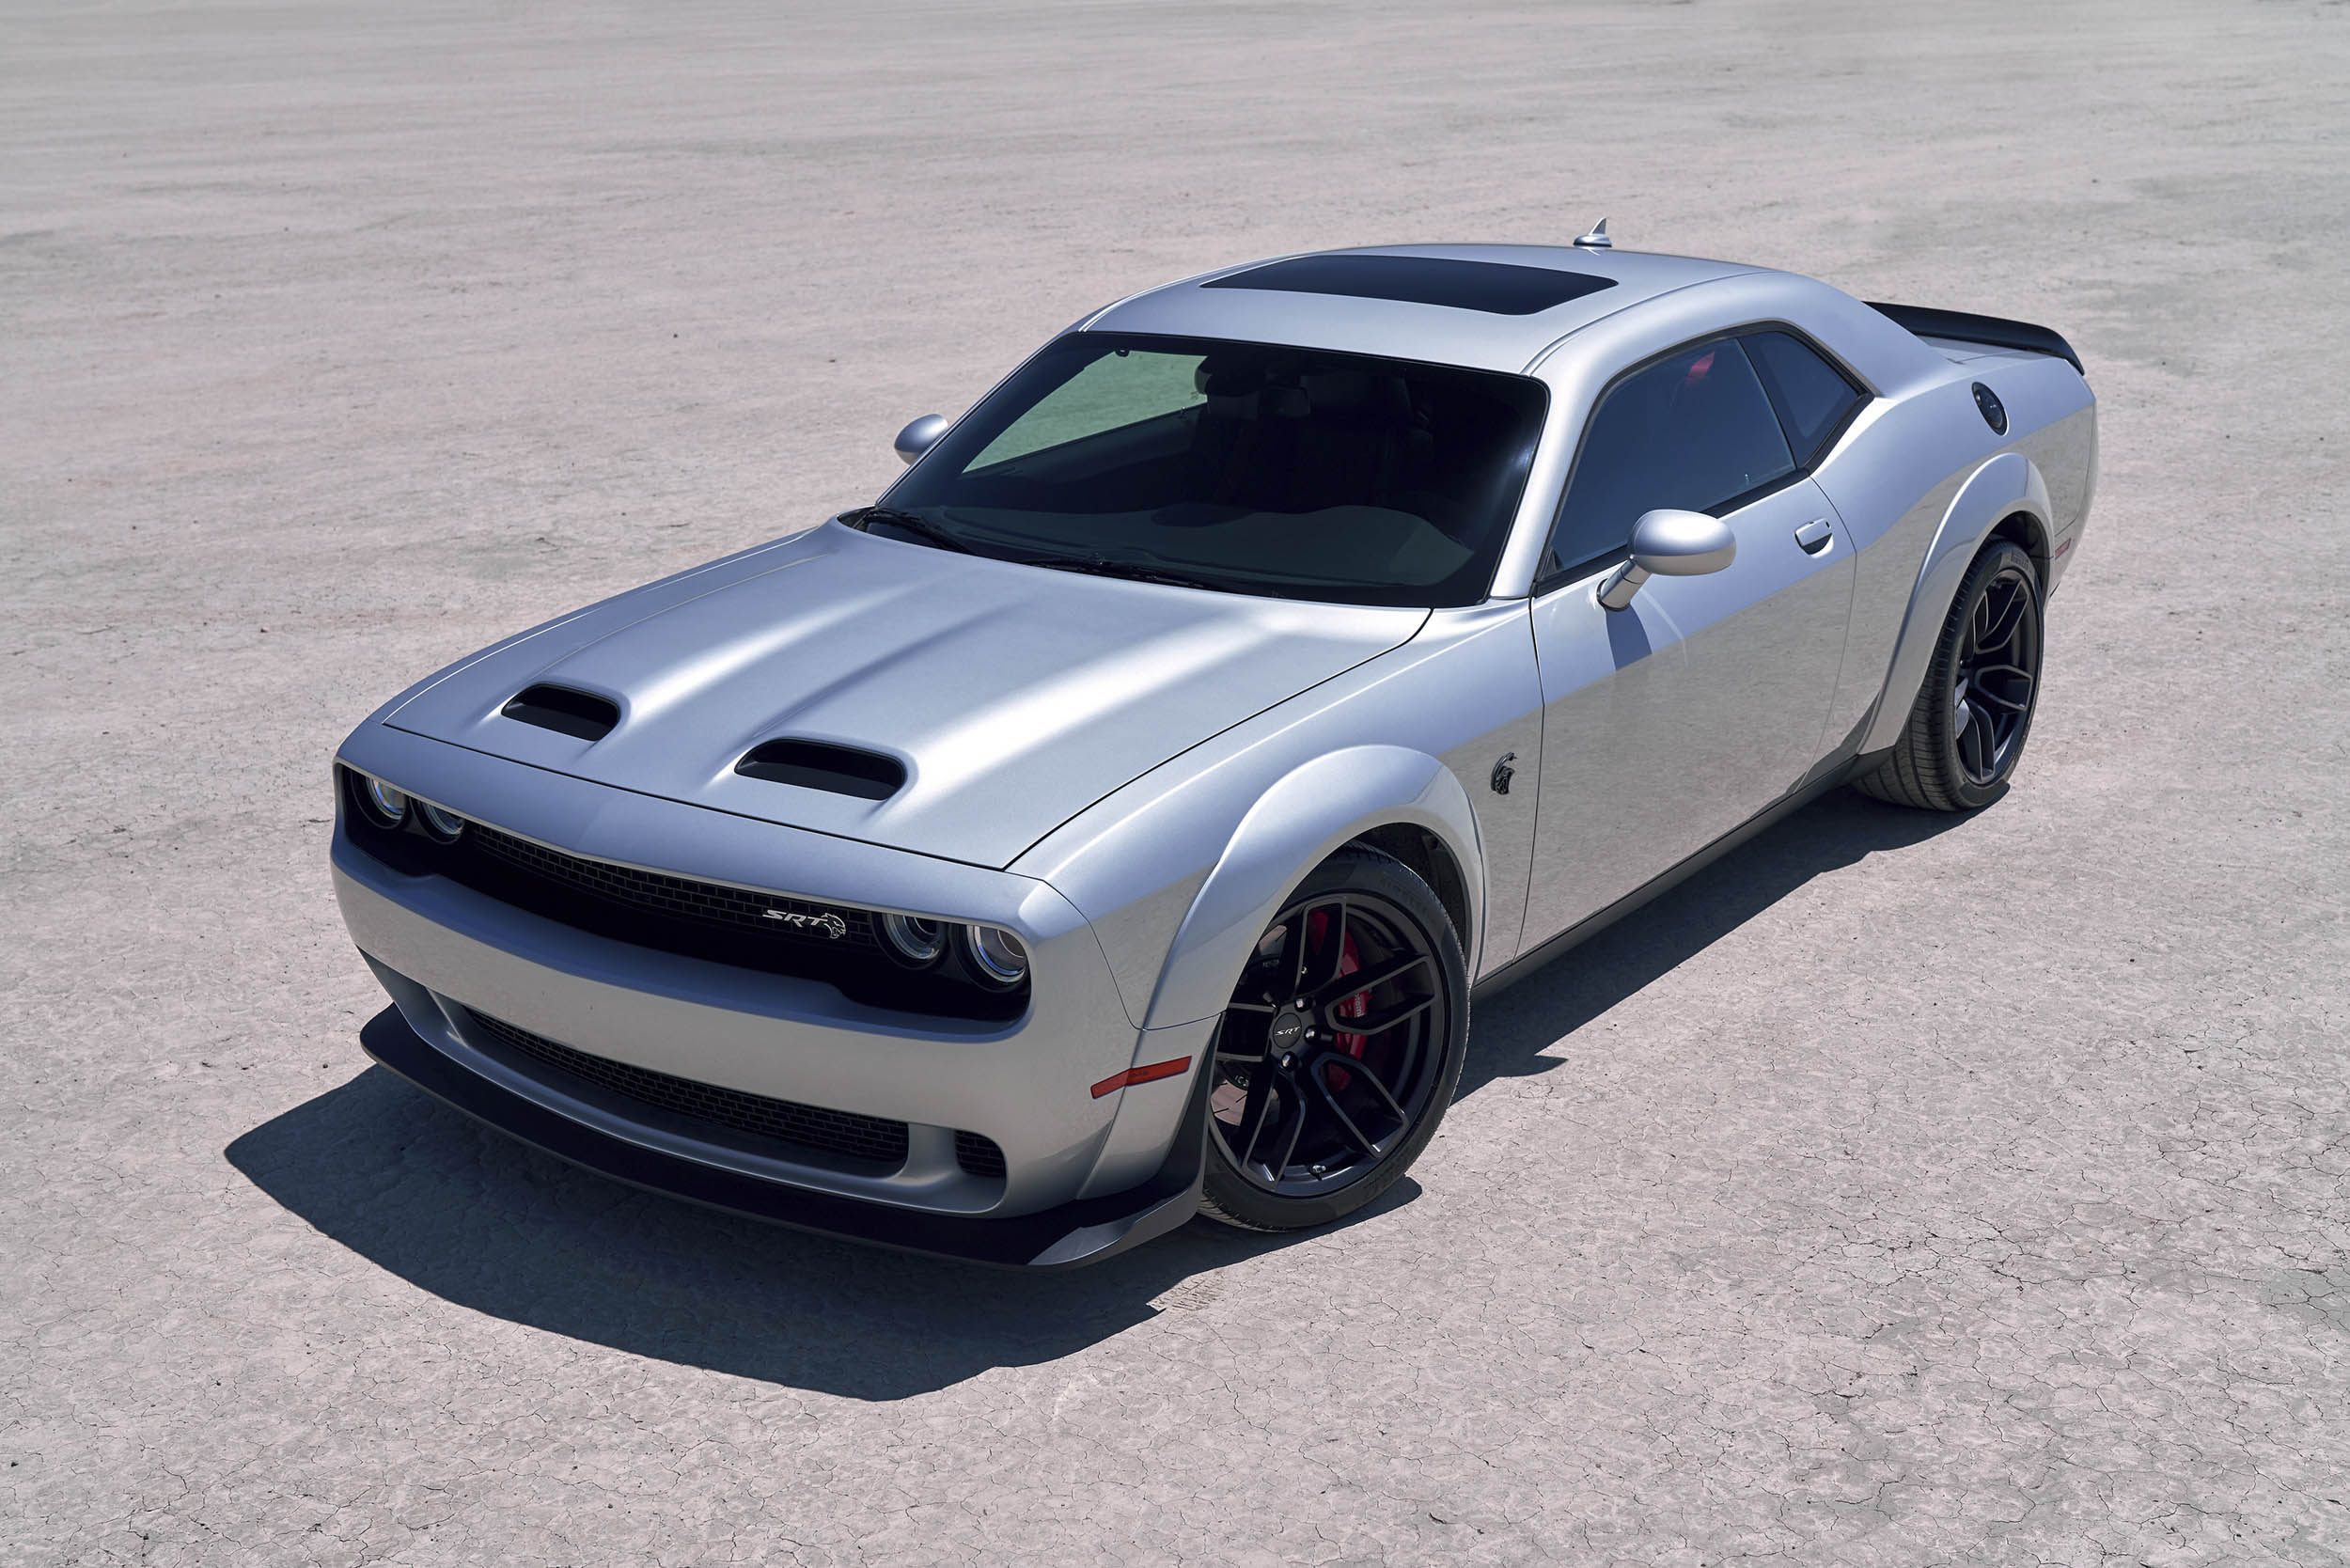 2019 Dodge Challenger SRT Hellcat Redeye Widebody side 3/4